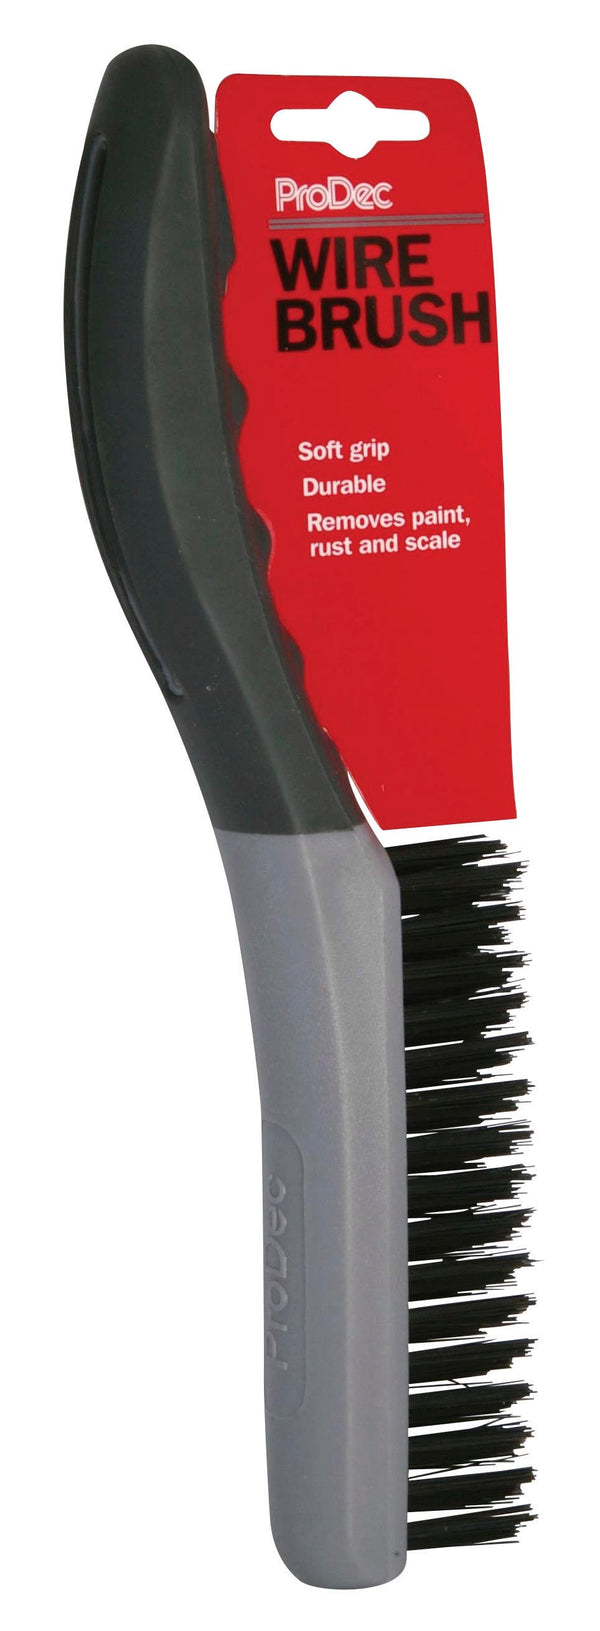 Prodec wire brush 10""